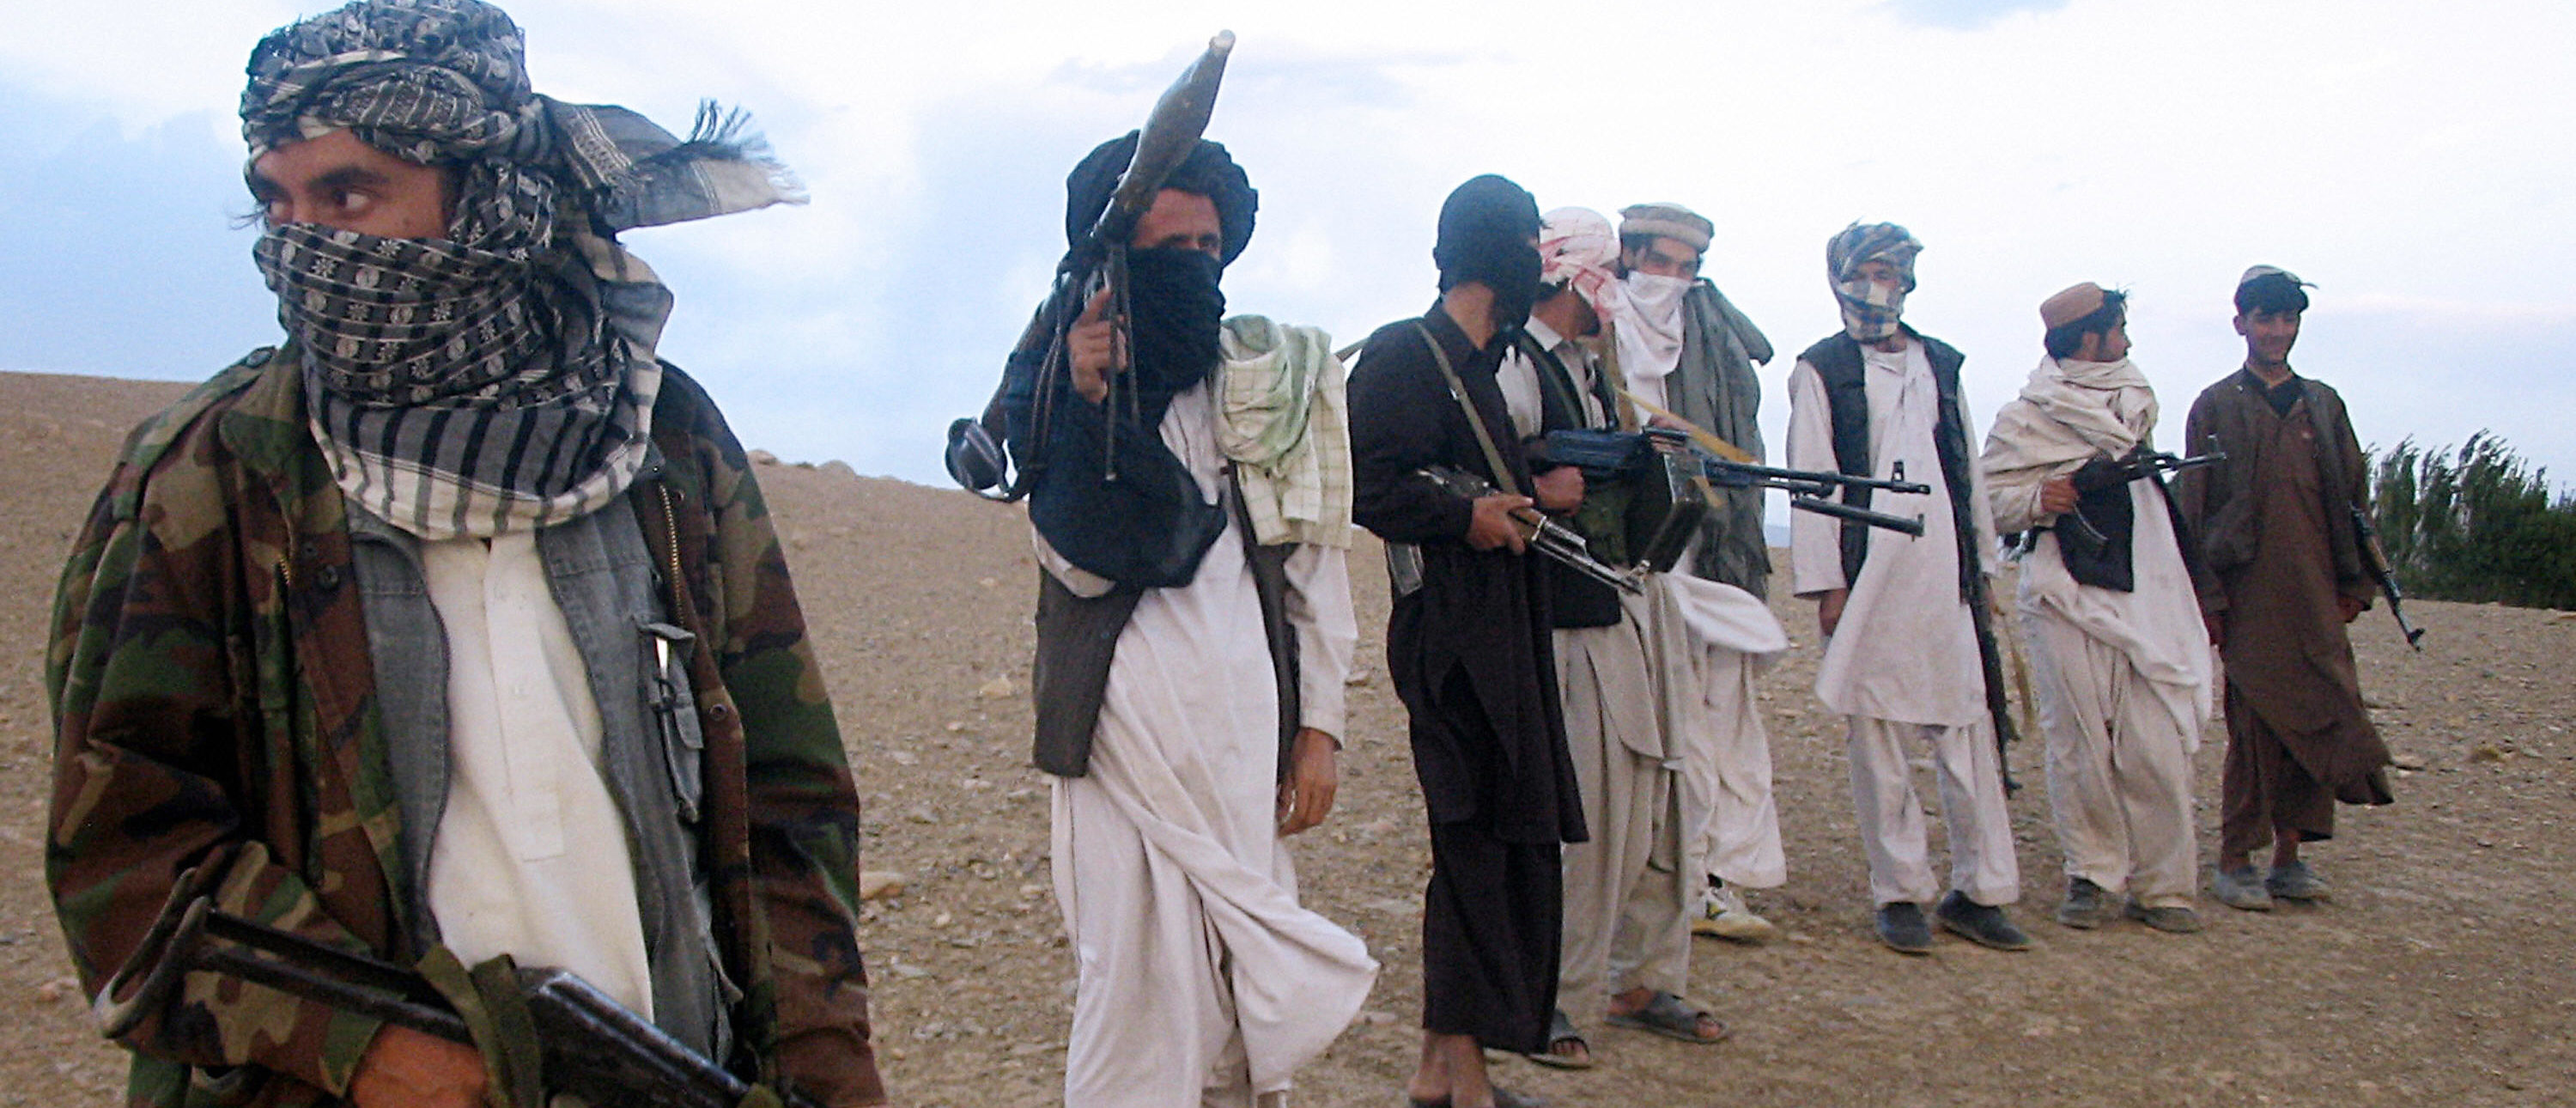 The New York Times Publishes Op-Ed From Taliban Leader